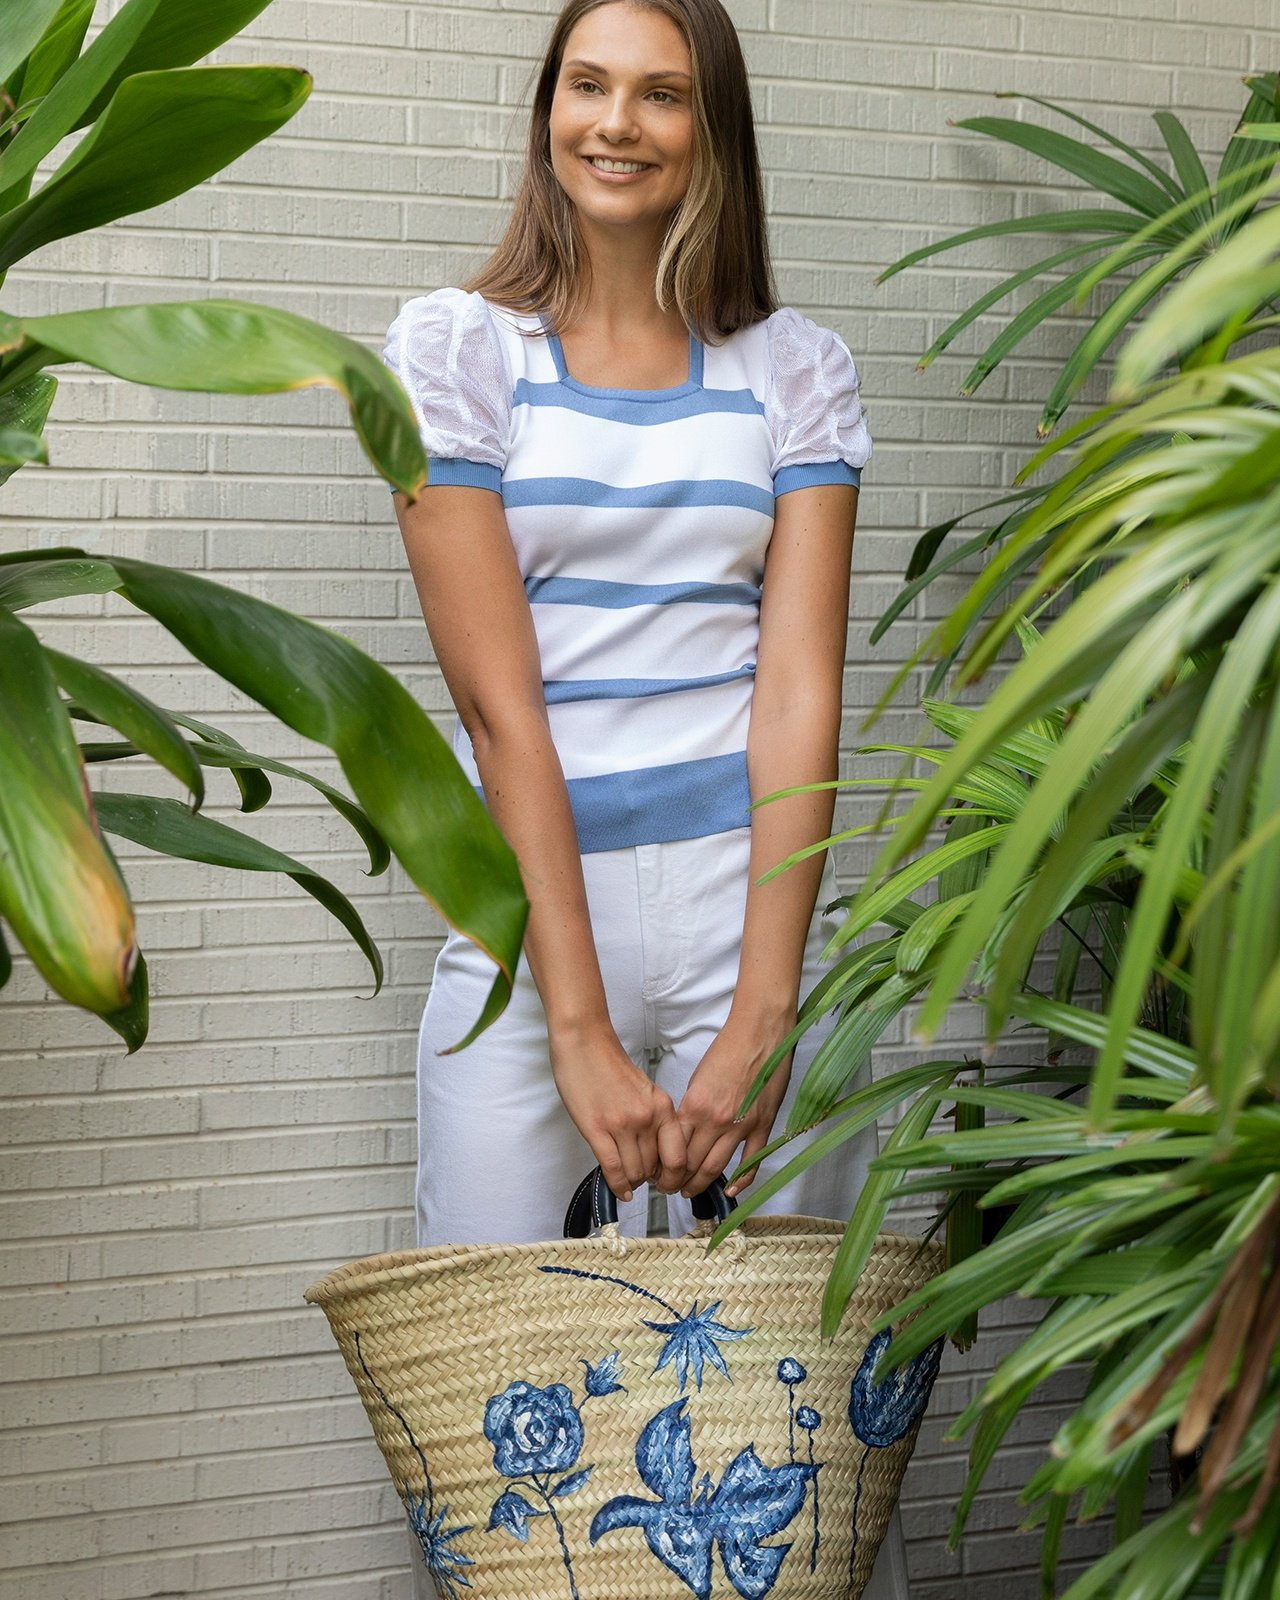 Ralph Lauren blue and white puffed-sleeved top, white pants and straw bag